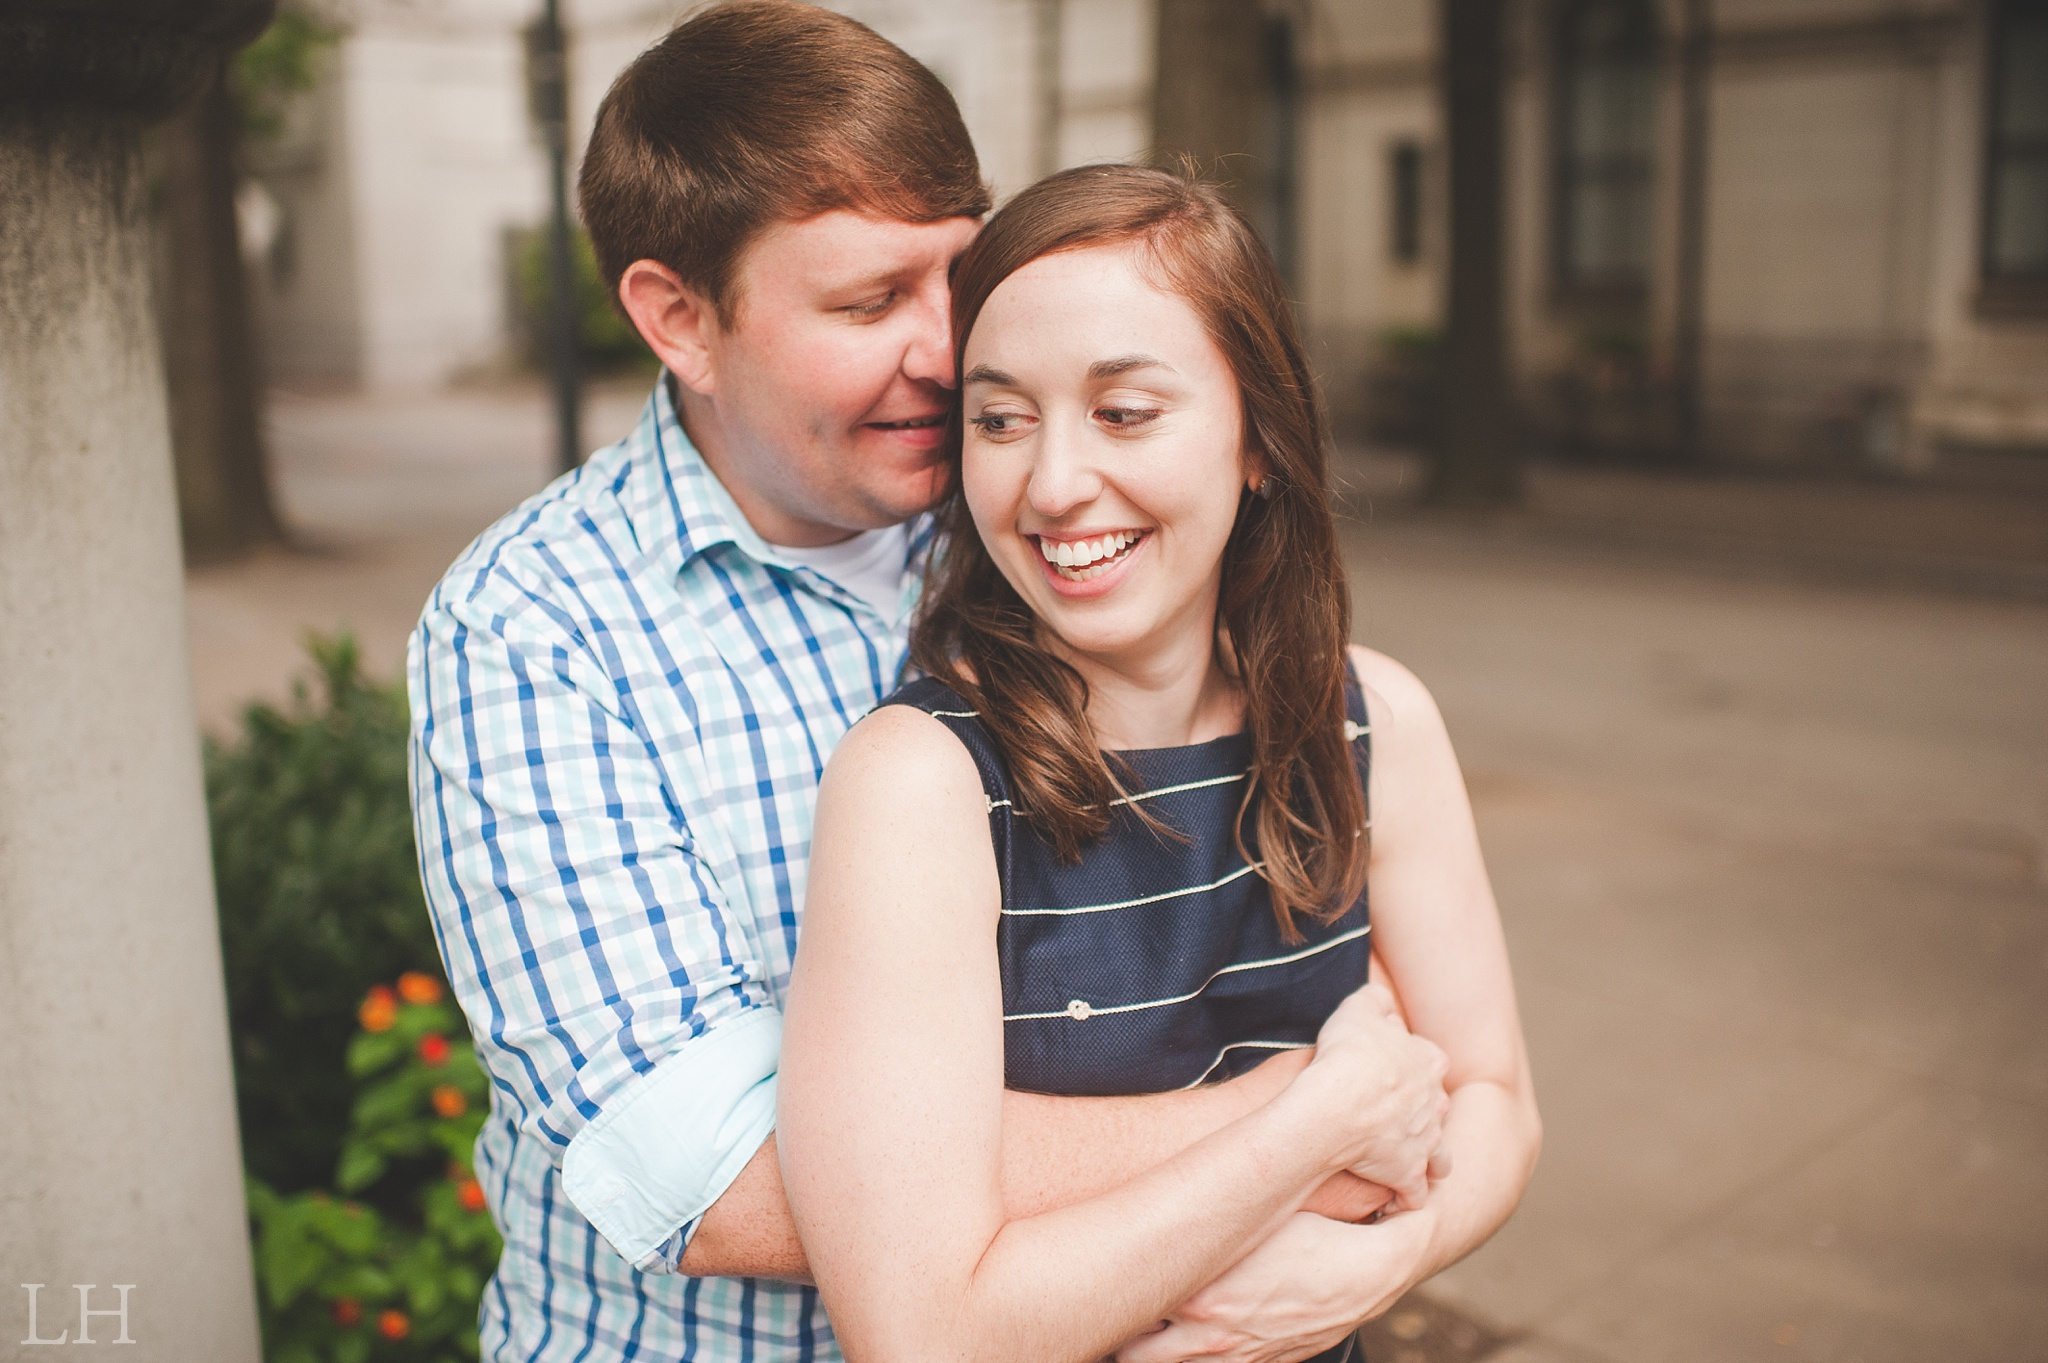 DowntownKnoxvilleEngagementSession106.jpg